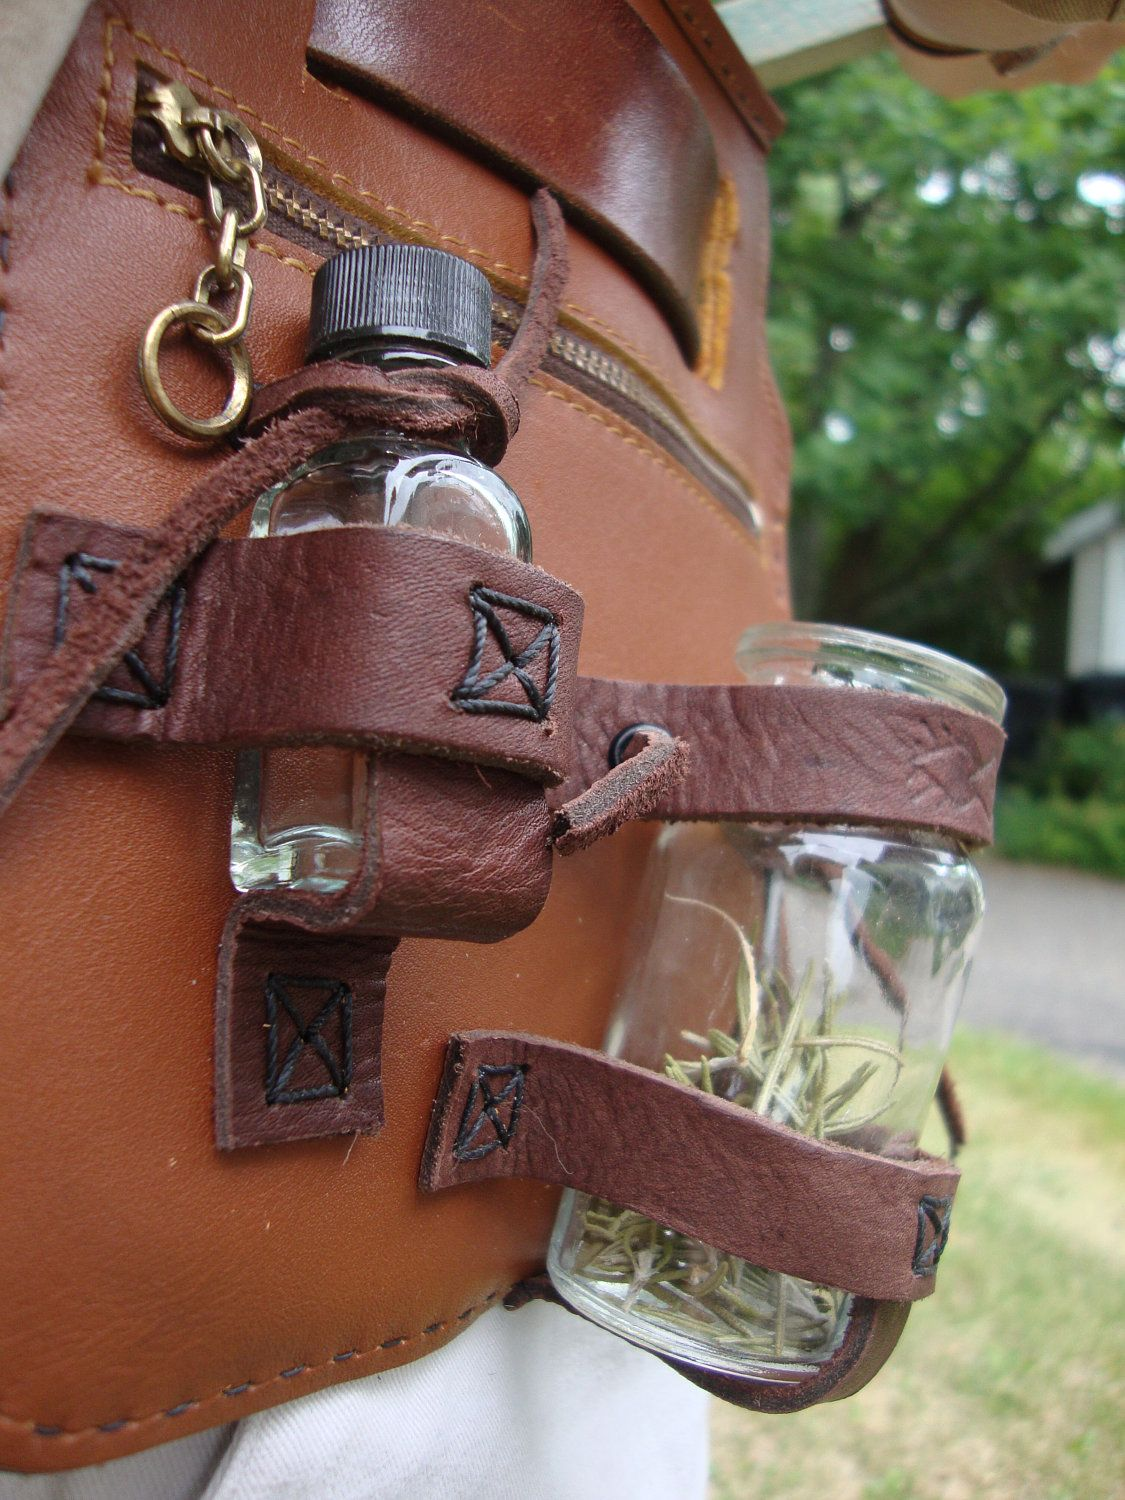 diy leather belt chair slipcovers for barrel chairs pouch bottle holder  pinteres